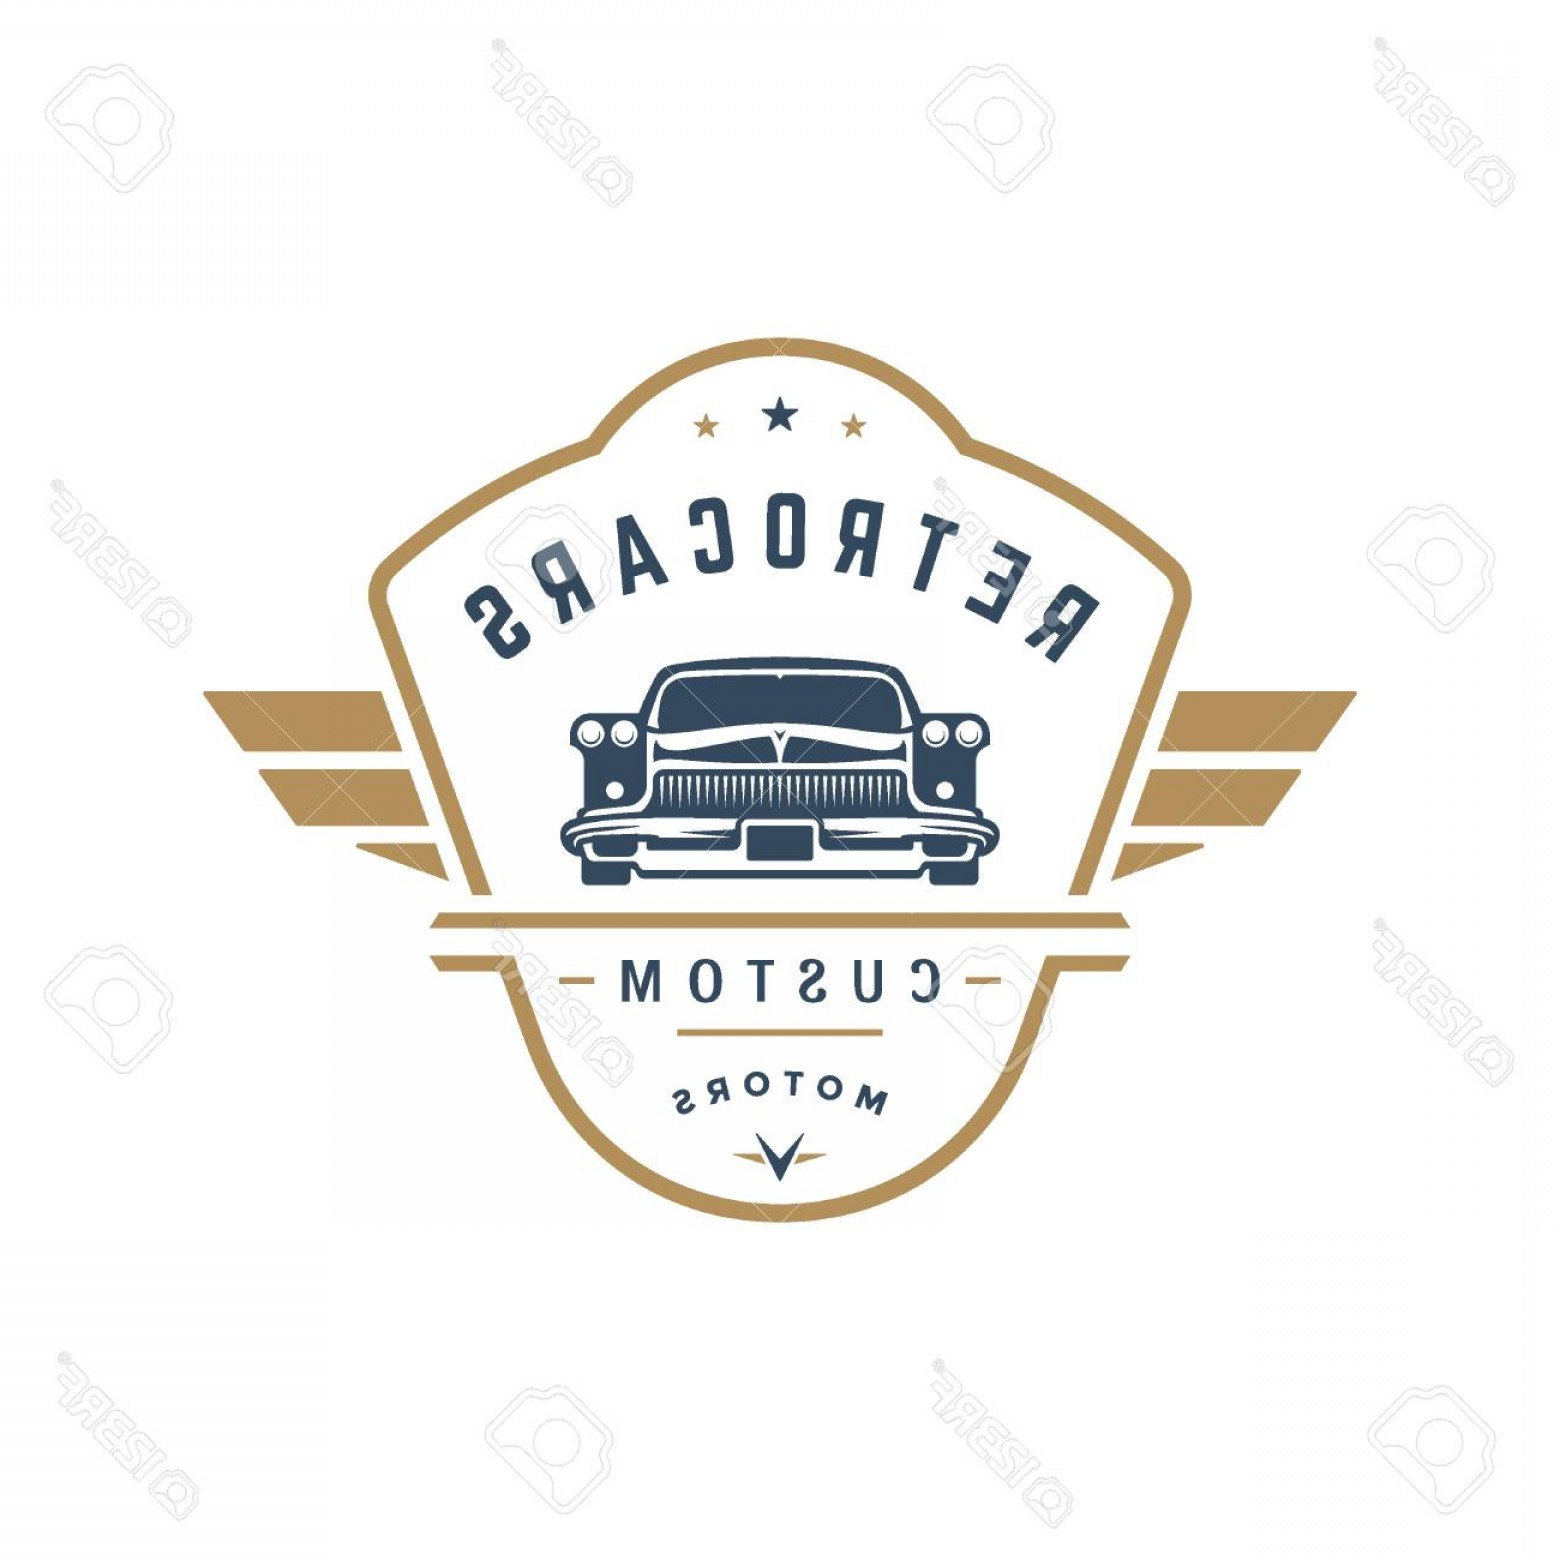 Custom Police Cars Vector: Photostock Vector Hot Rod Car Logo Template Vector Design Element Vintage Style